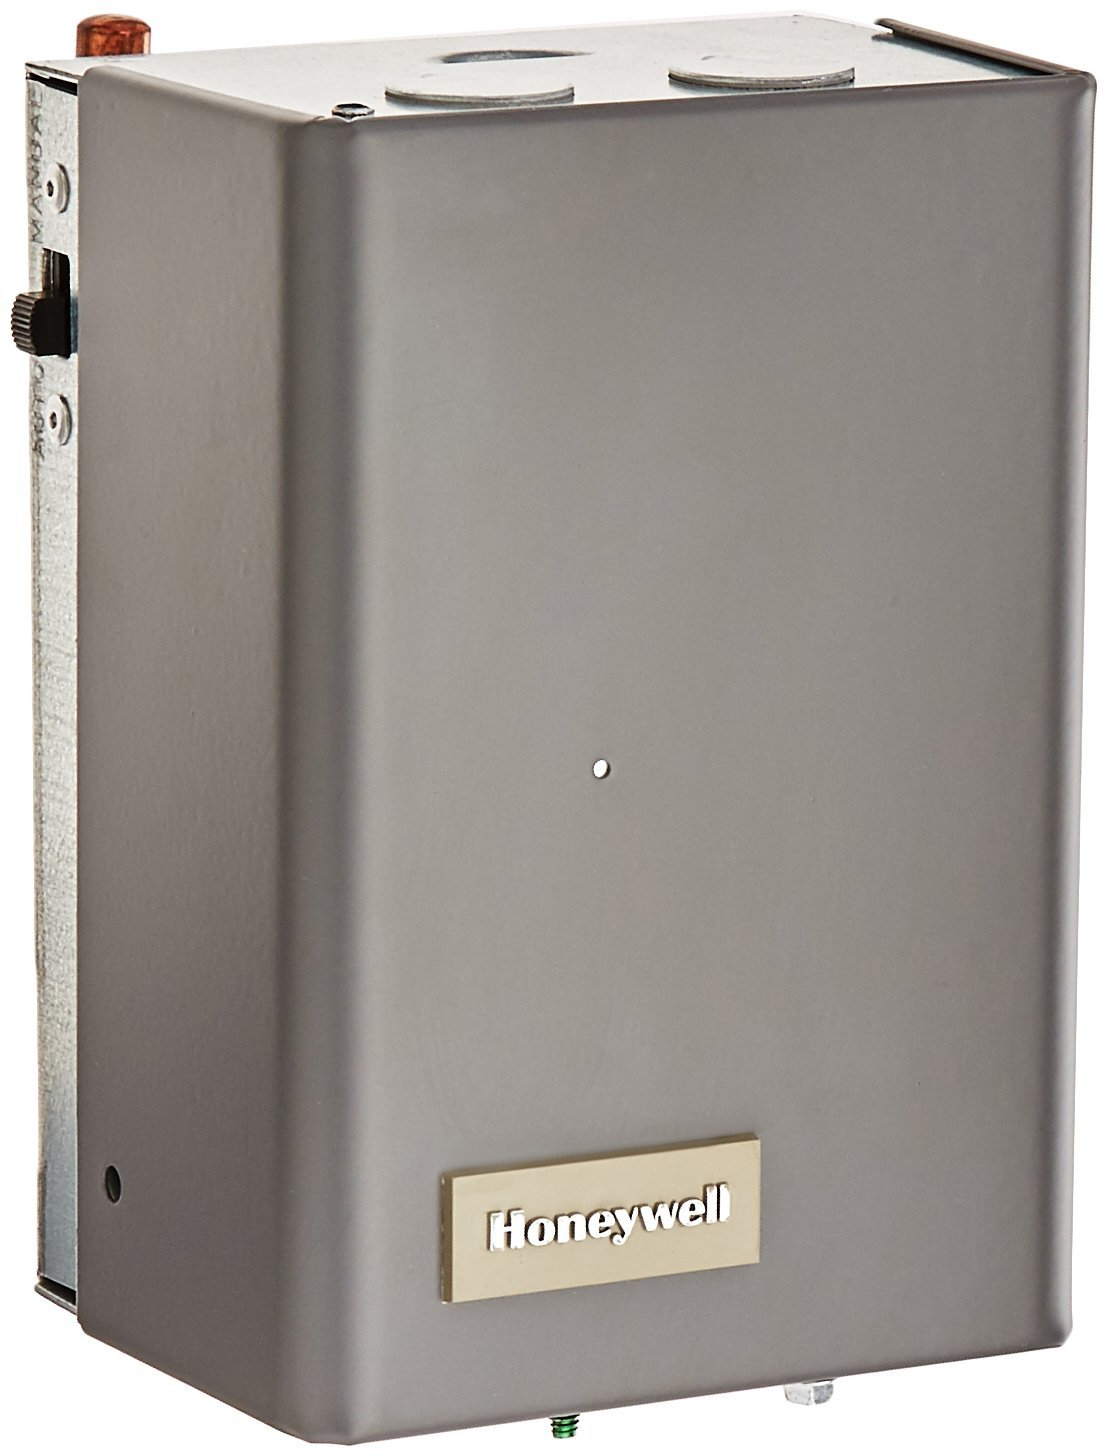 71BxH88GcNL._SL1456_ honeywell l7224u aquastat wiring diagram gandul 45 77 79 119 honeywell th6110d1021 wiring diagram at webbmarketing.co